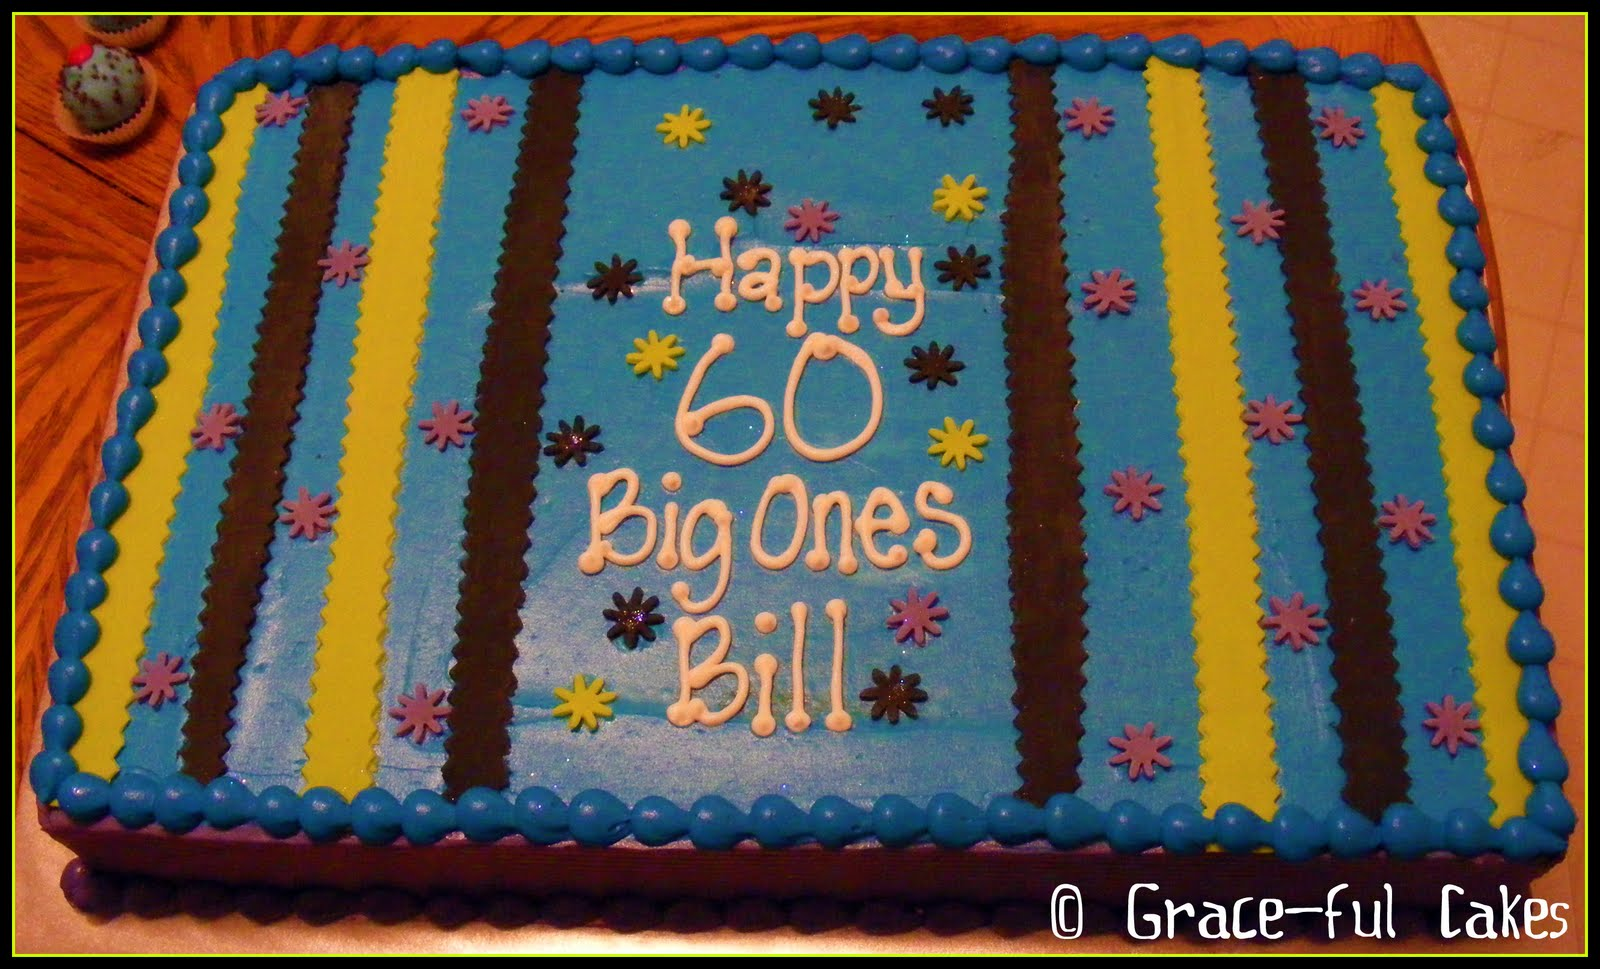 The next cake I was scheduled to work on was for a 60 year old man ...